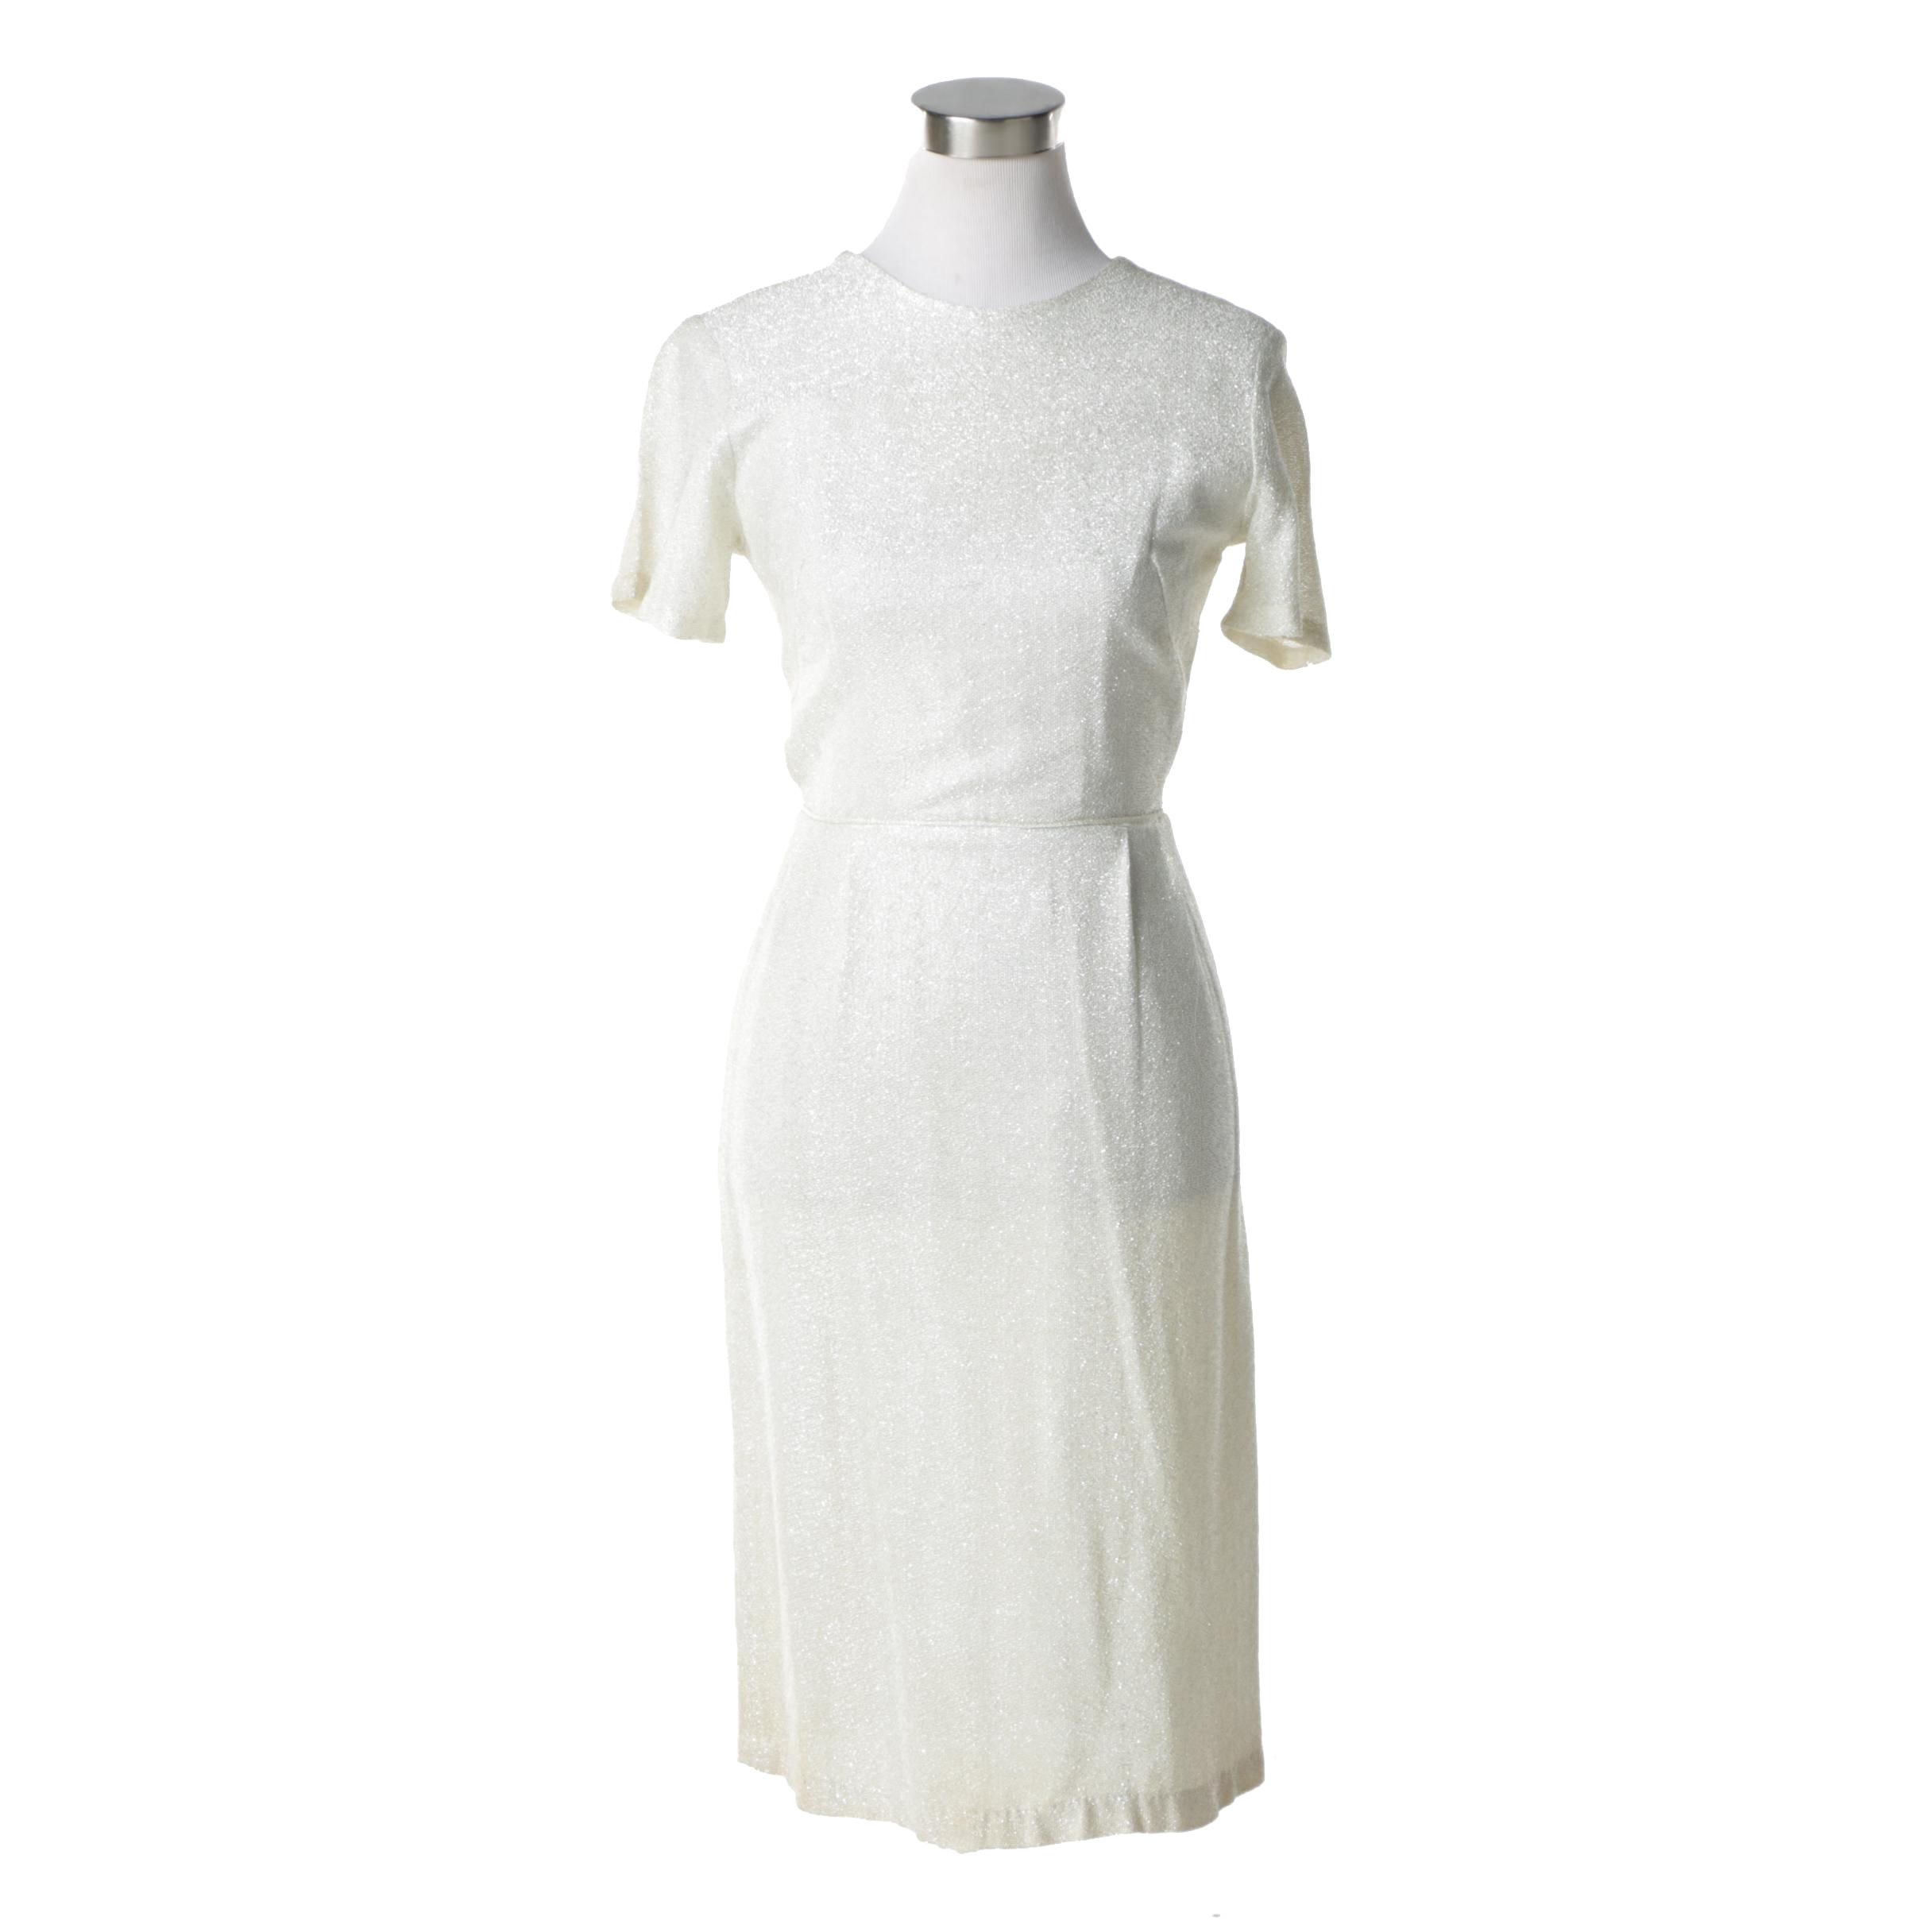 Vintage White and Metallic Silver Lurex Dress